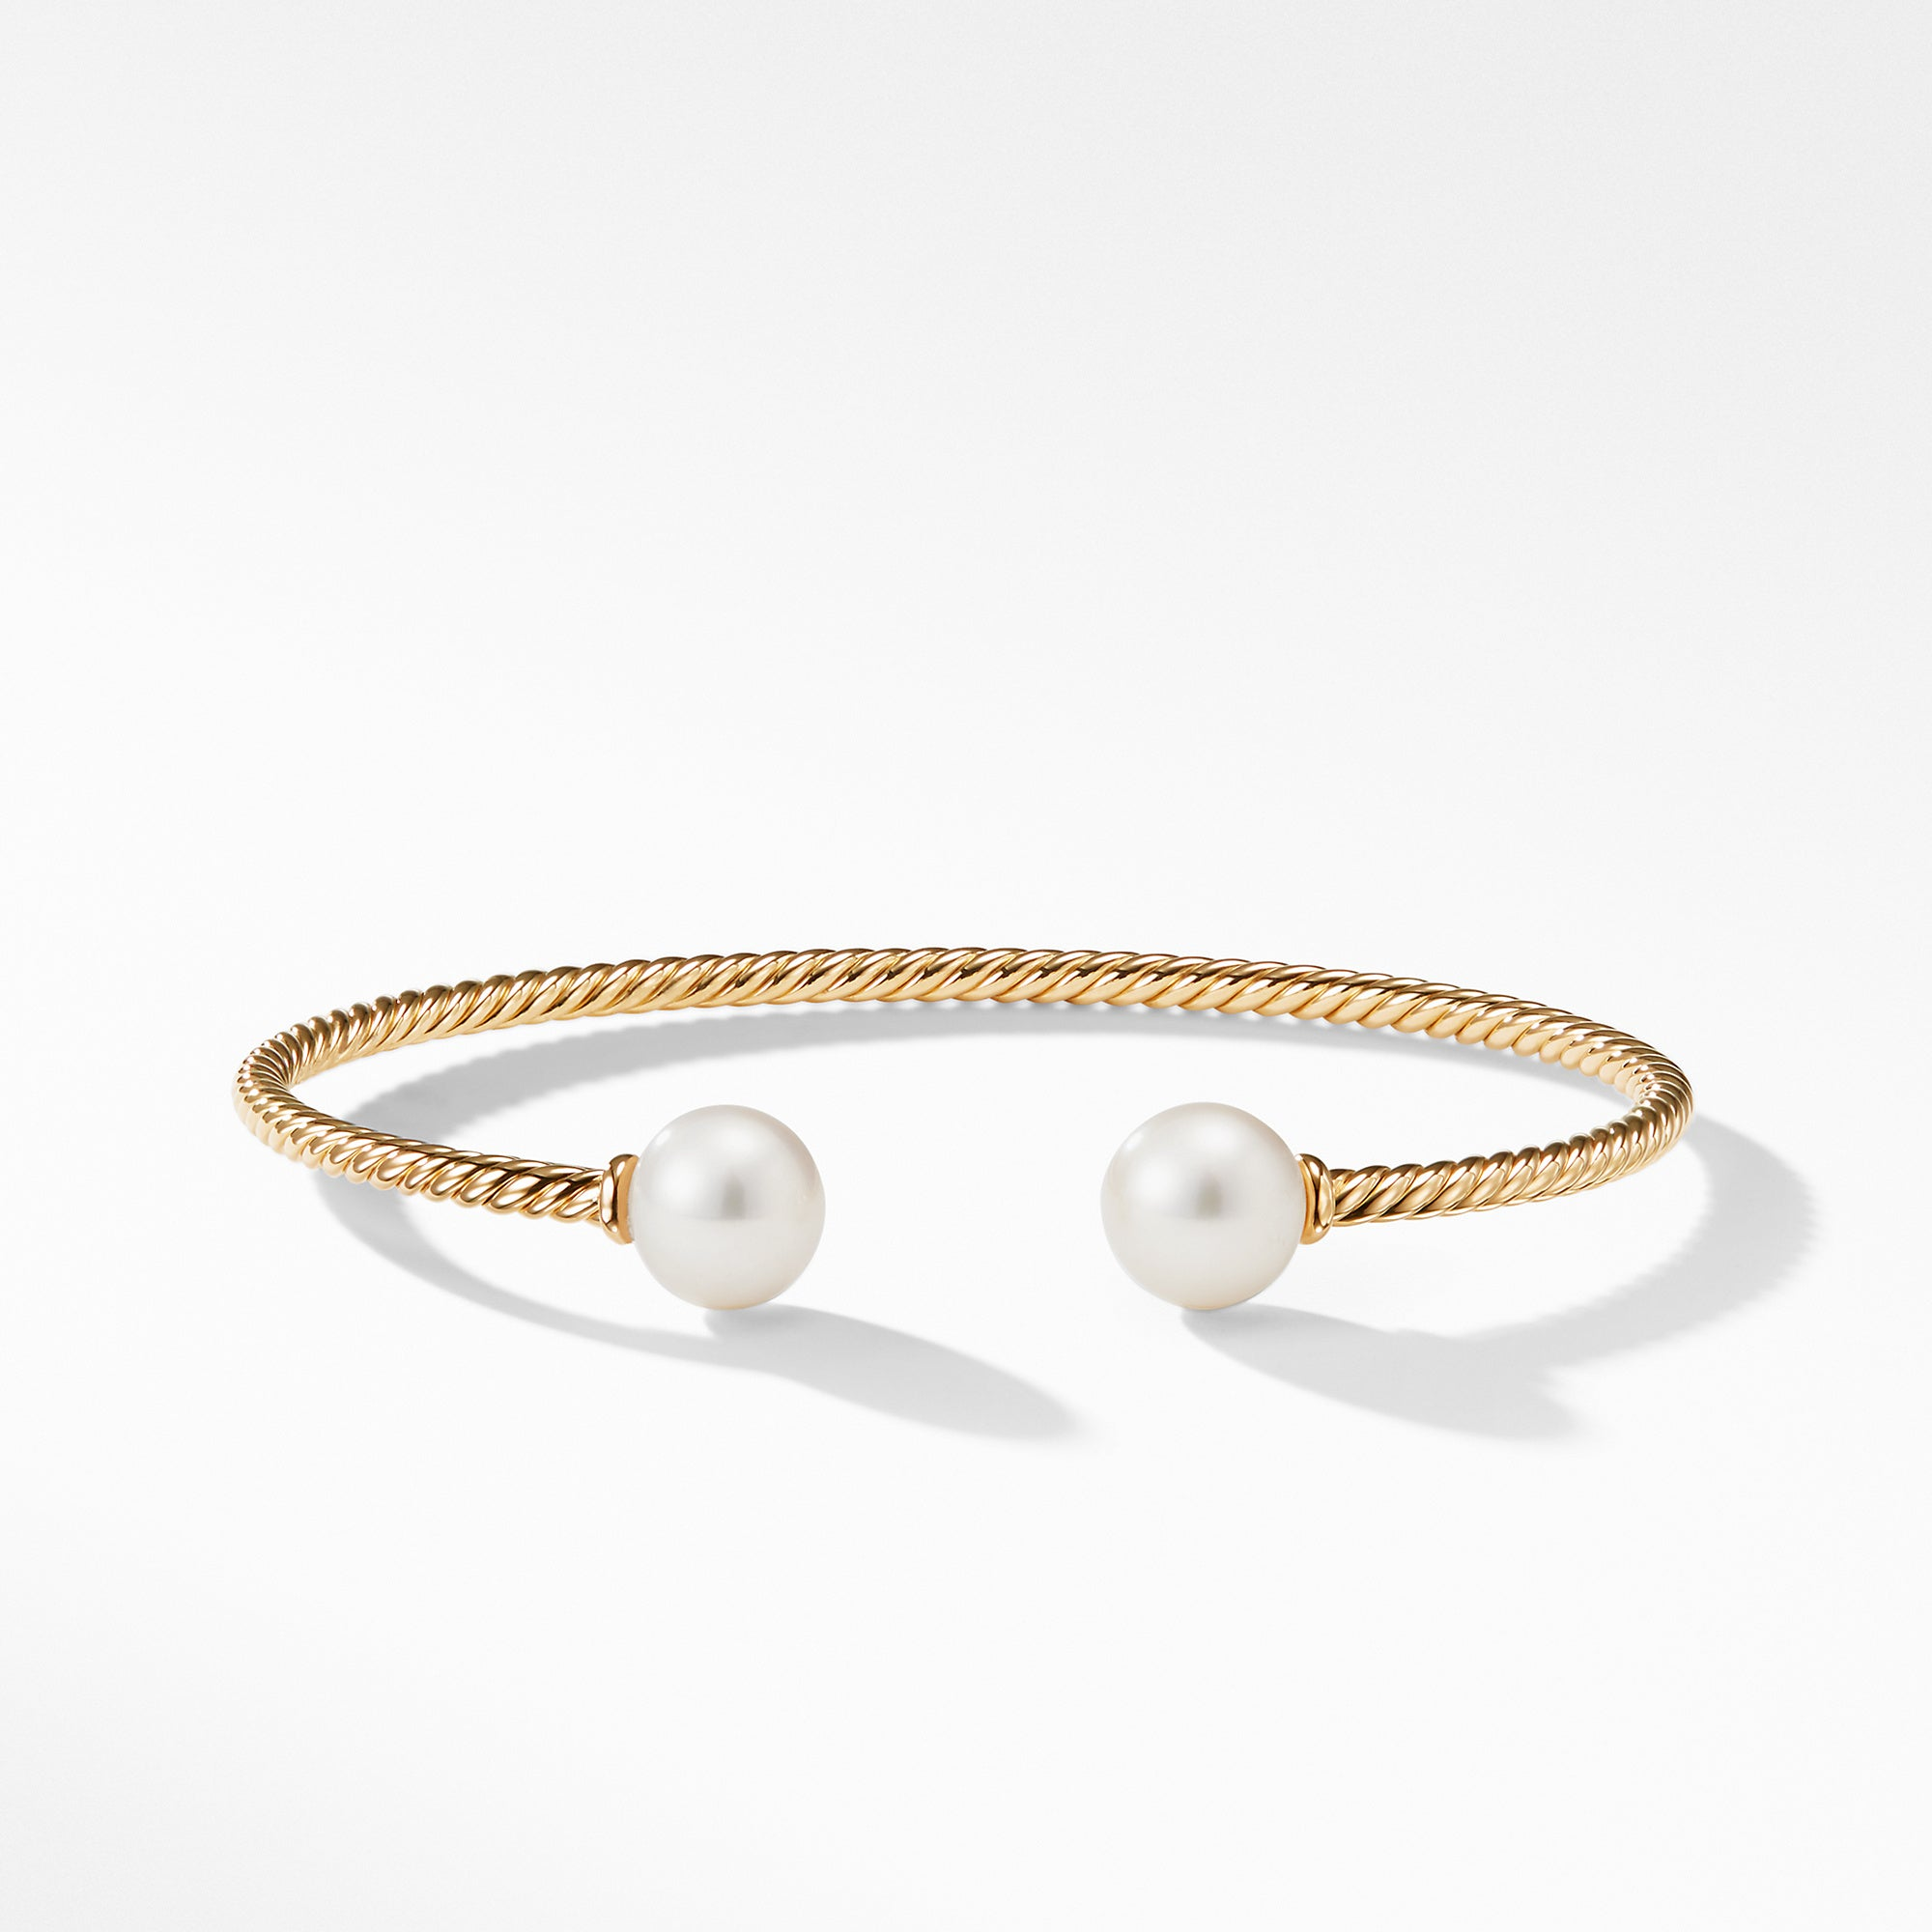 Bead Bracelet with Pearl in 18K Gold